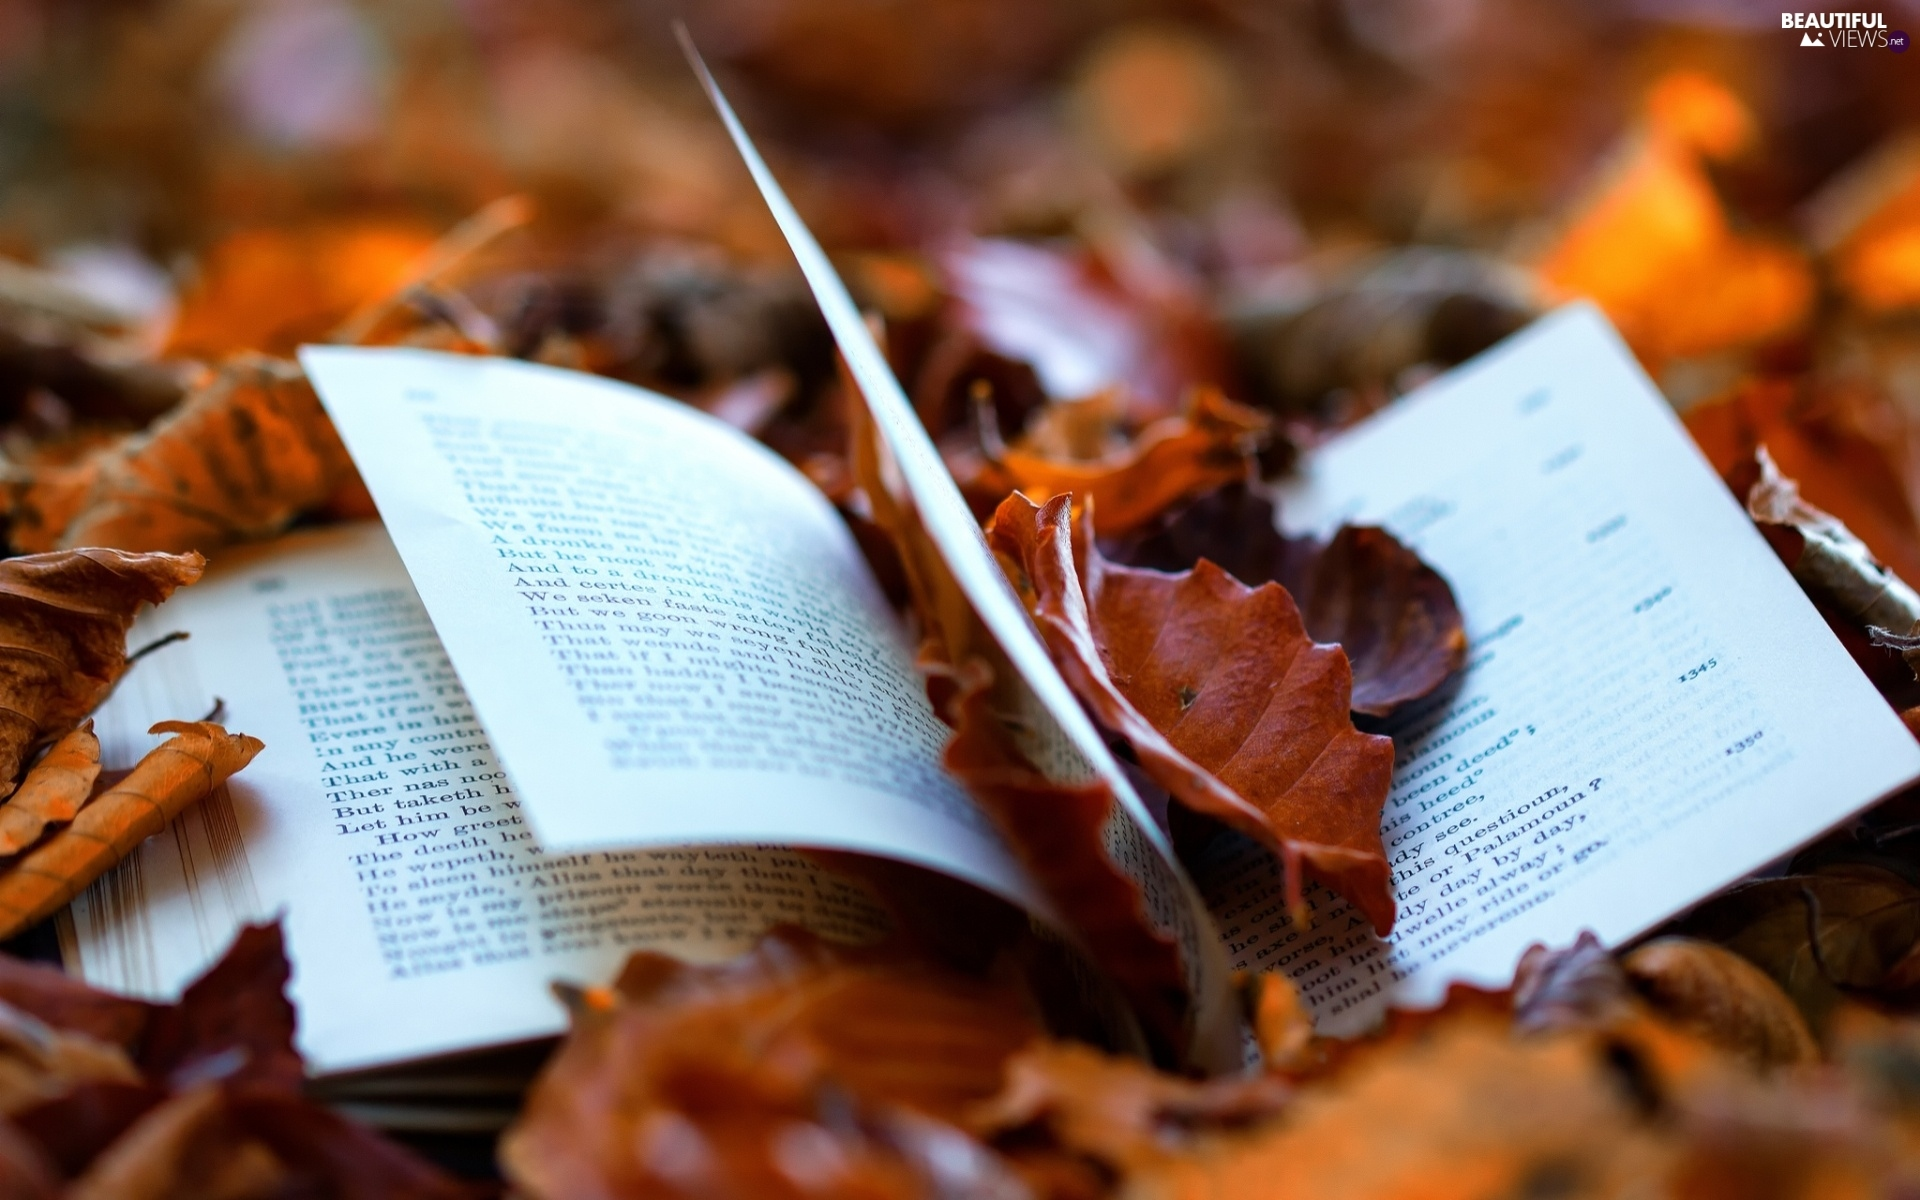 Fall Wallpaper For Tablet Autumn Book Leaf Beautiful Views Wallpapers 1920x1200